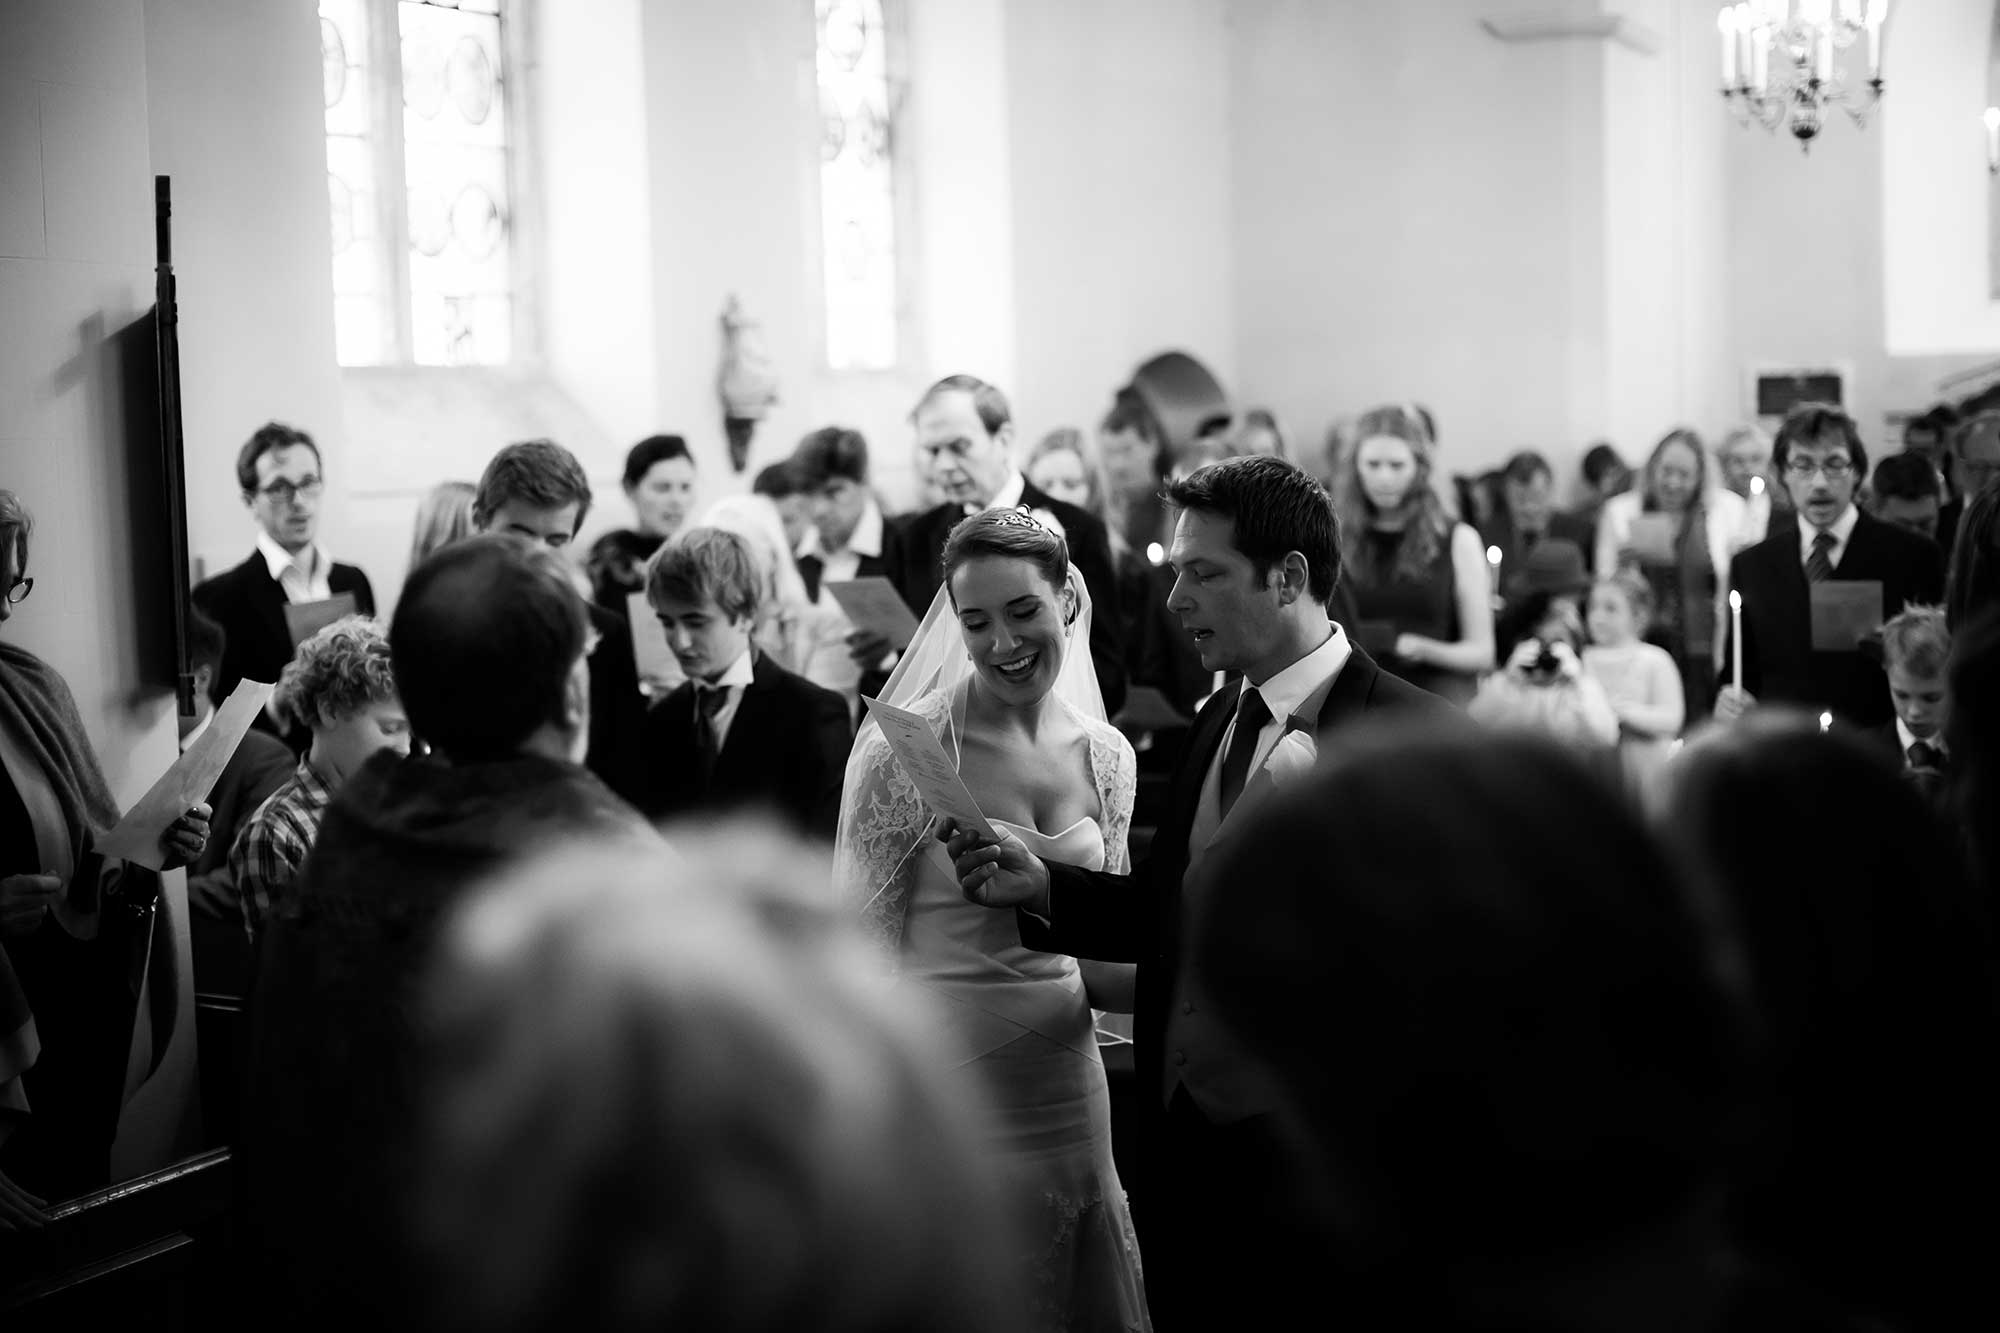 A congregation sing in Mapperton's church - Dorset wedding venue